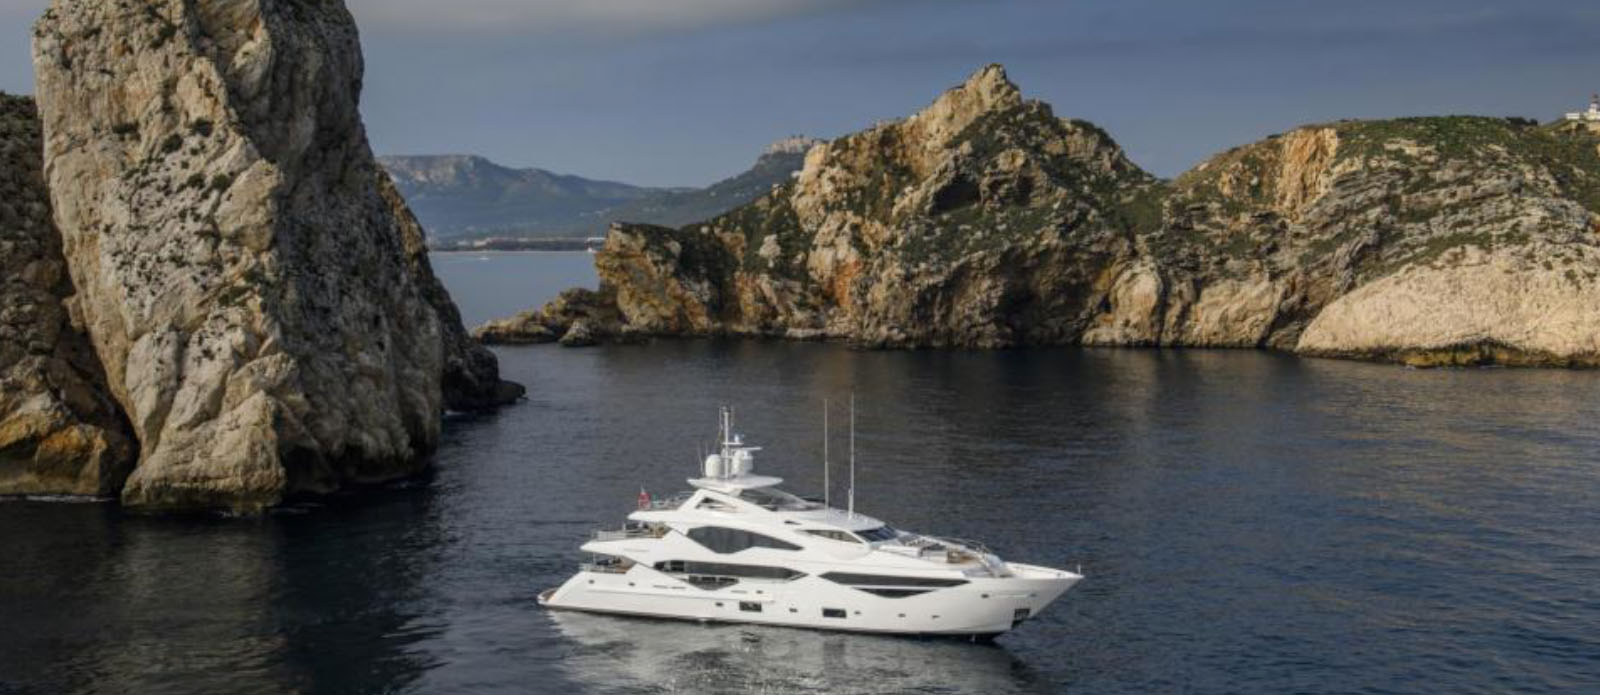 Berco-Voyager-Sunseeker-Exterior-Zoom